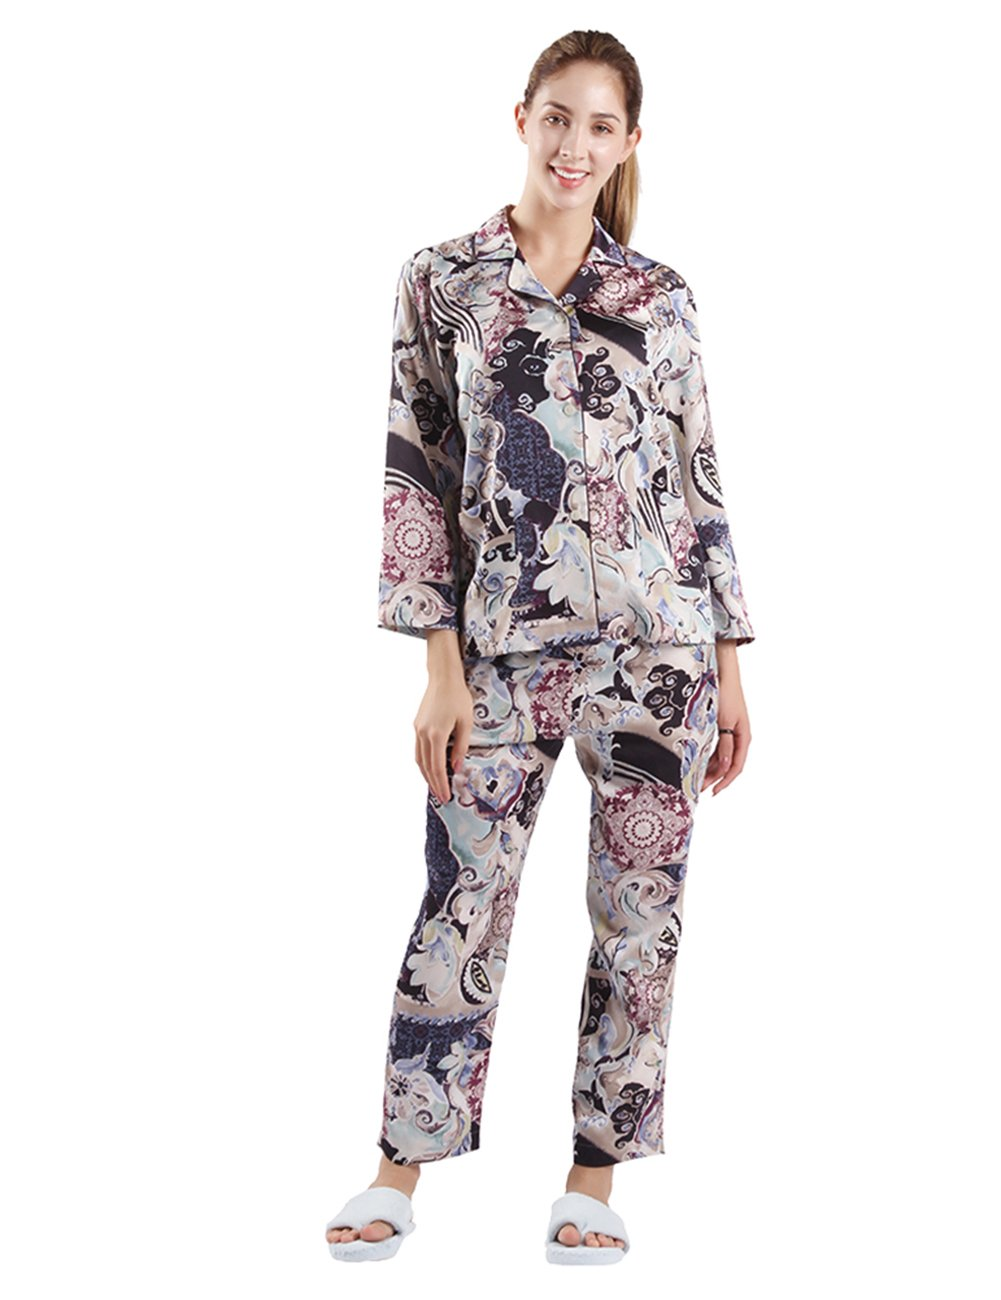 2 Set Pajamas for Women, DD DEMOISELLE Womens Comfort Sleepwear Long Sleeve Pant Pajama Set Purple Floral Size S